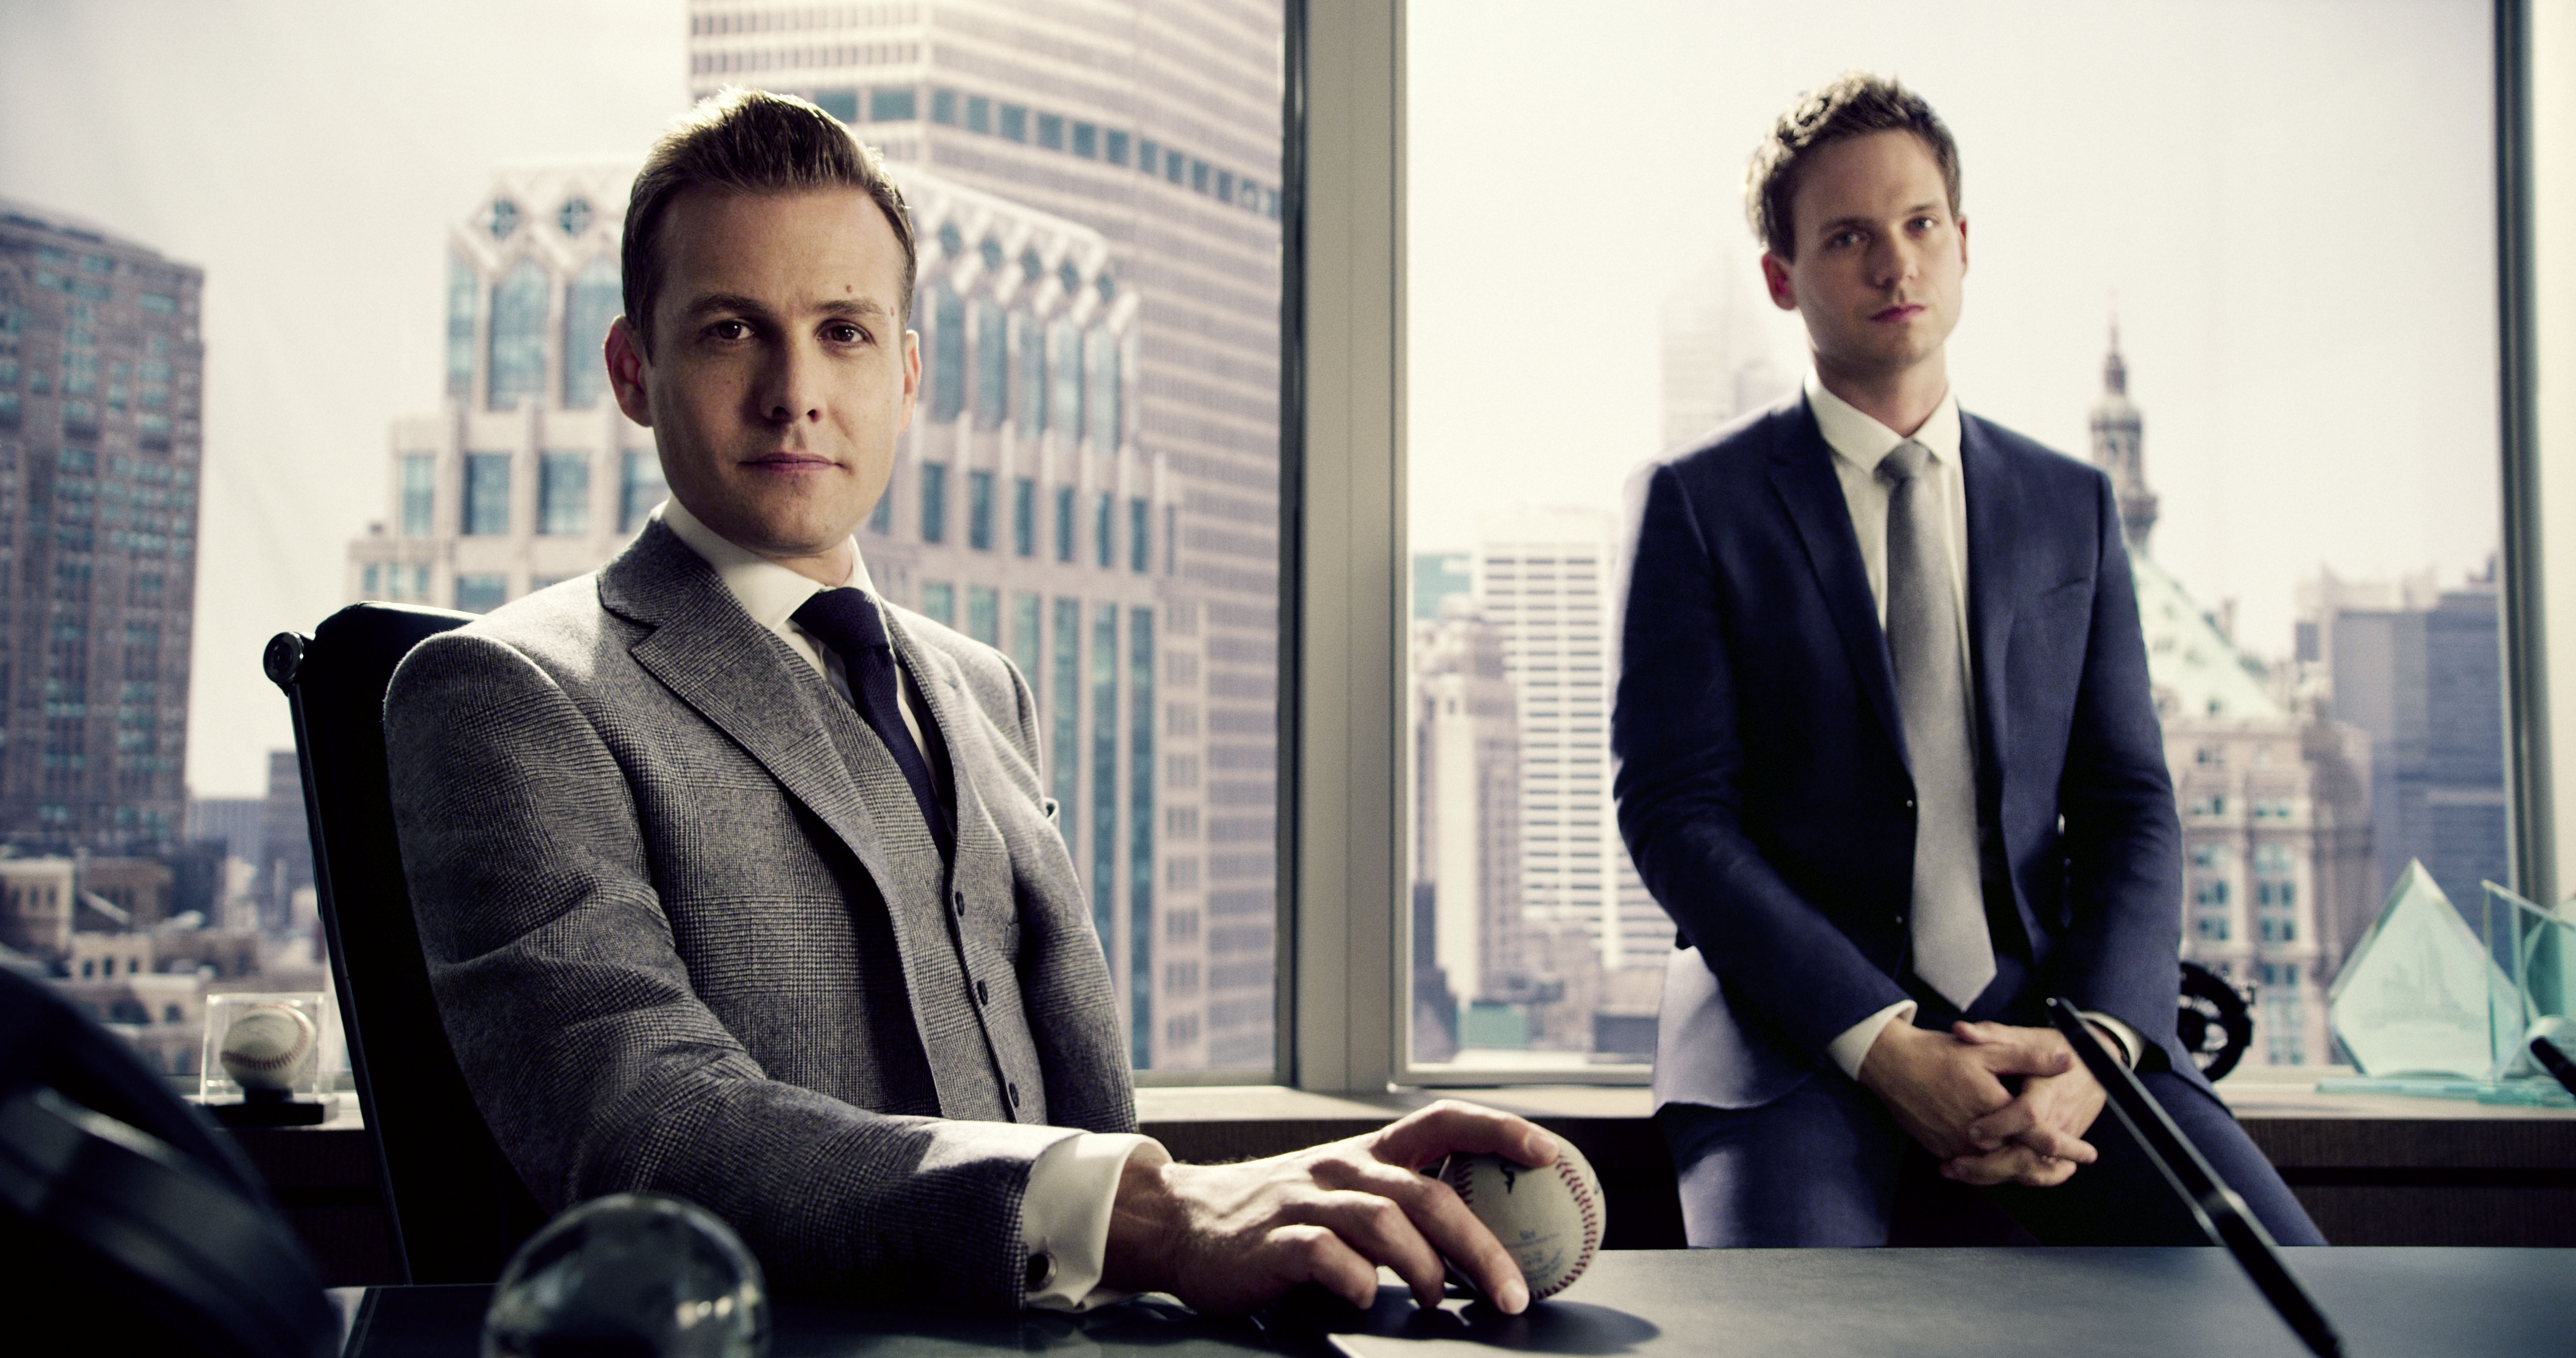 suits office. they suits office